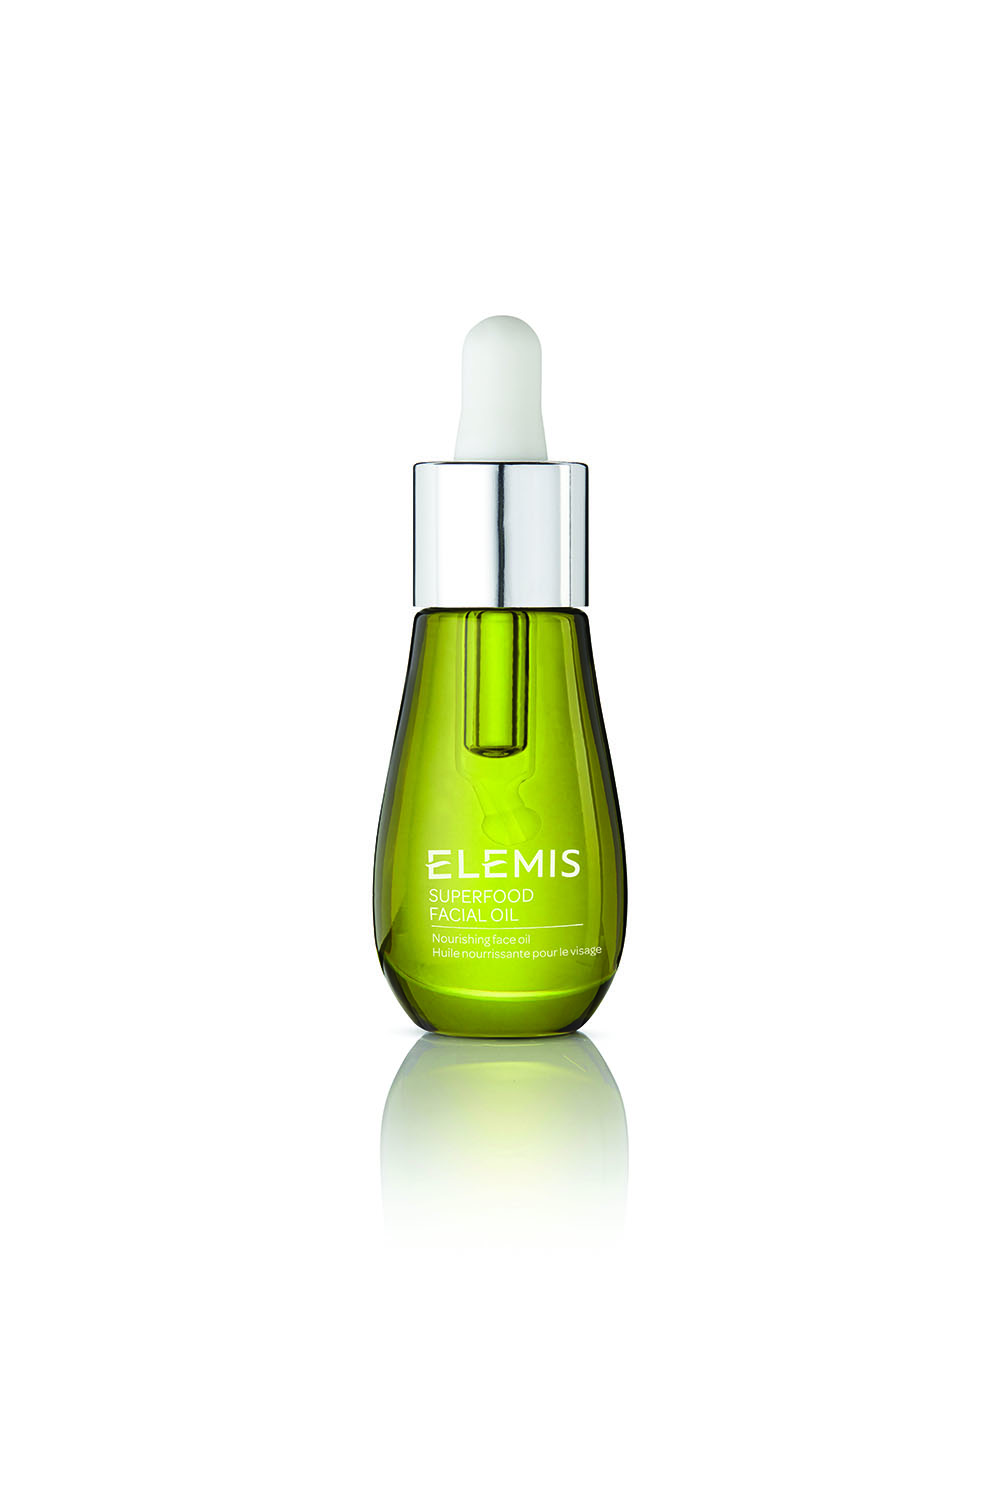 The ELEMIS Superfood Facial Oil ($55) gives skin a radiant, healthy glow.